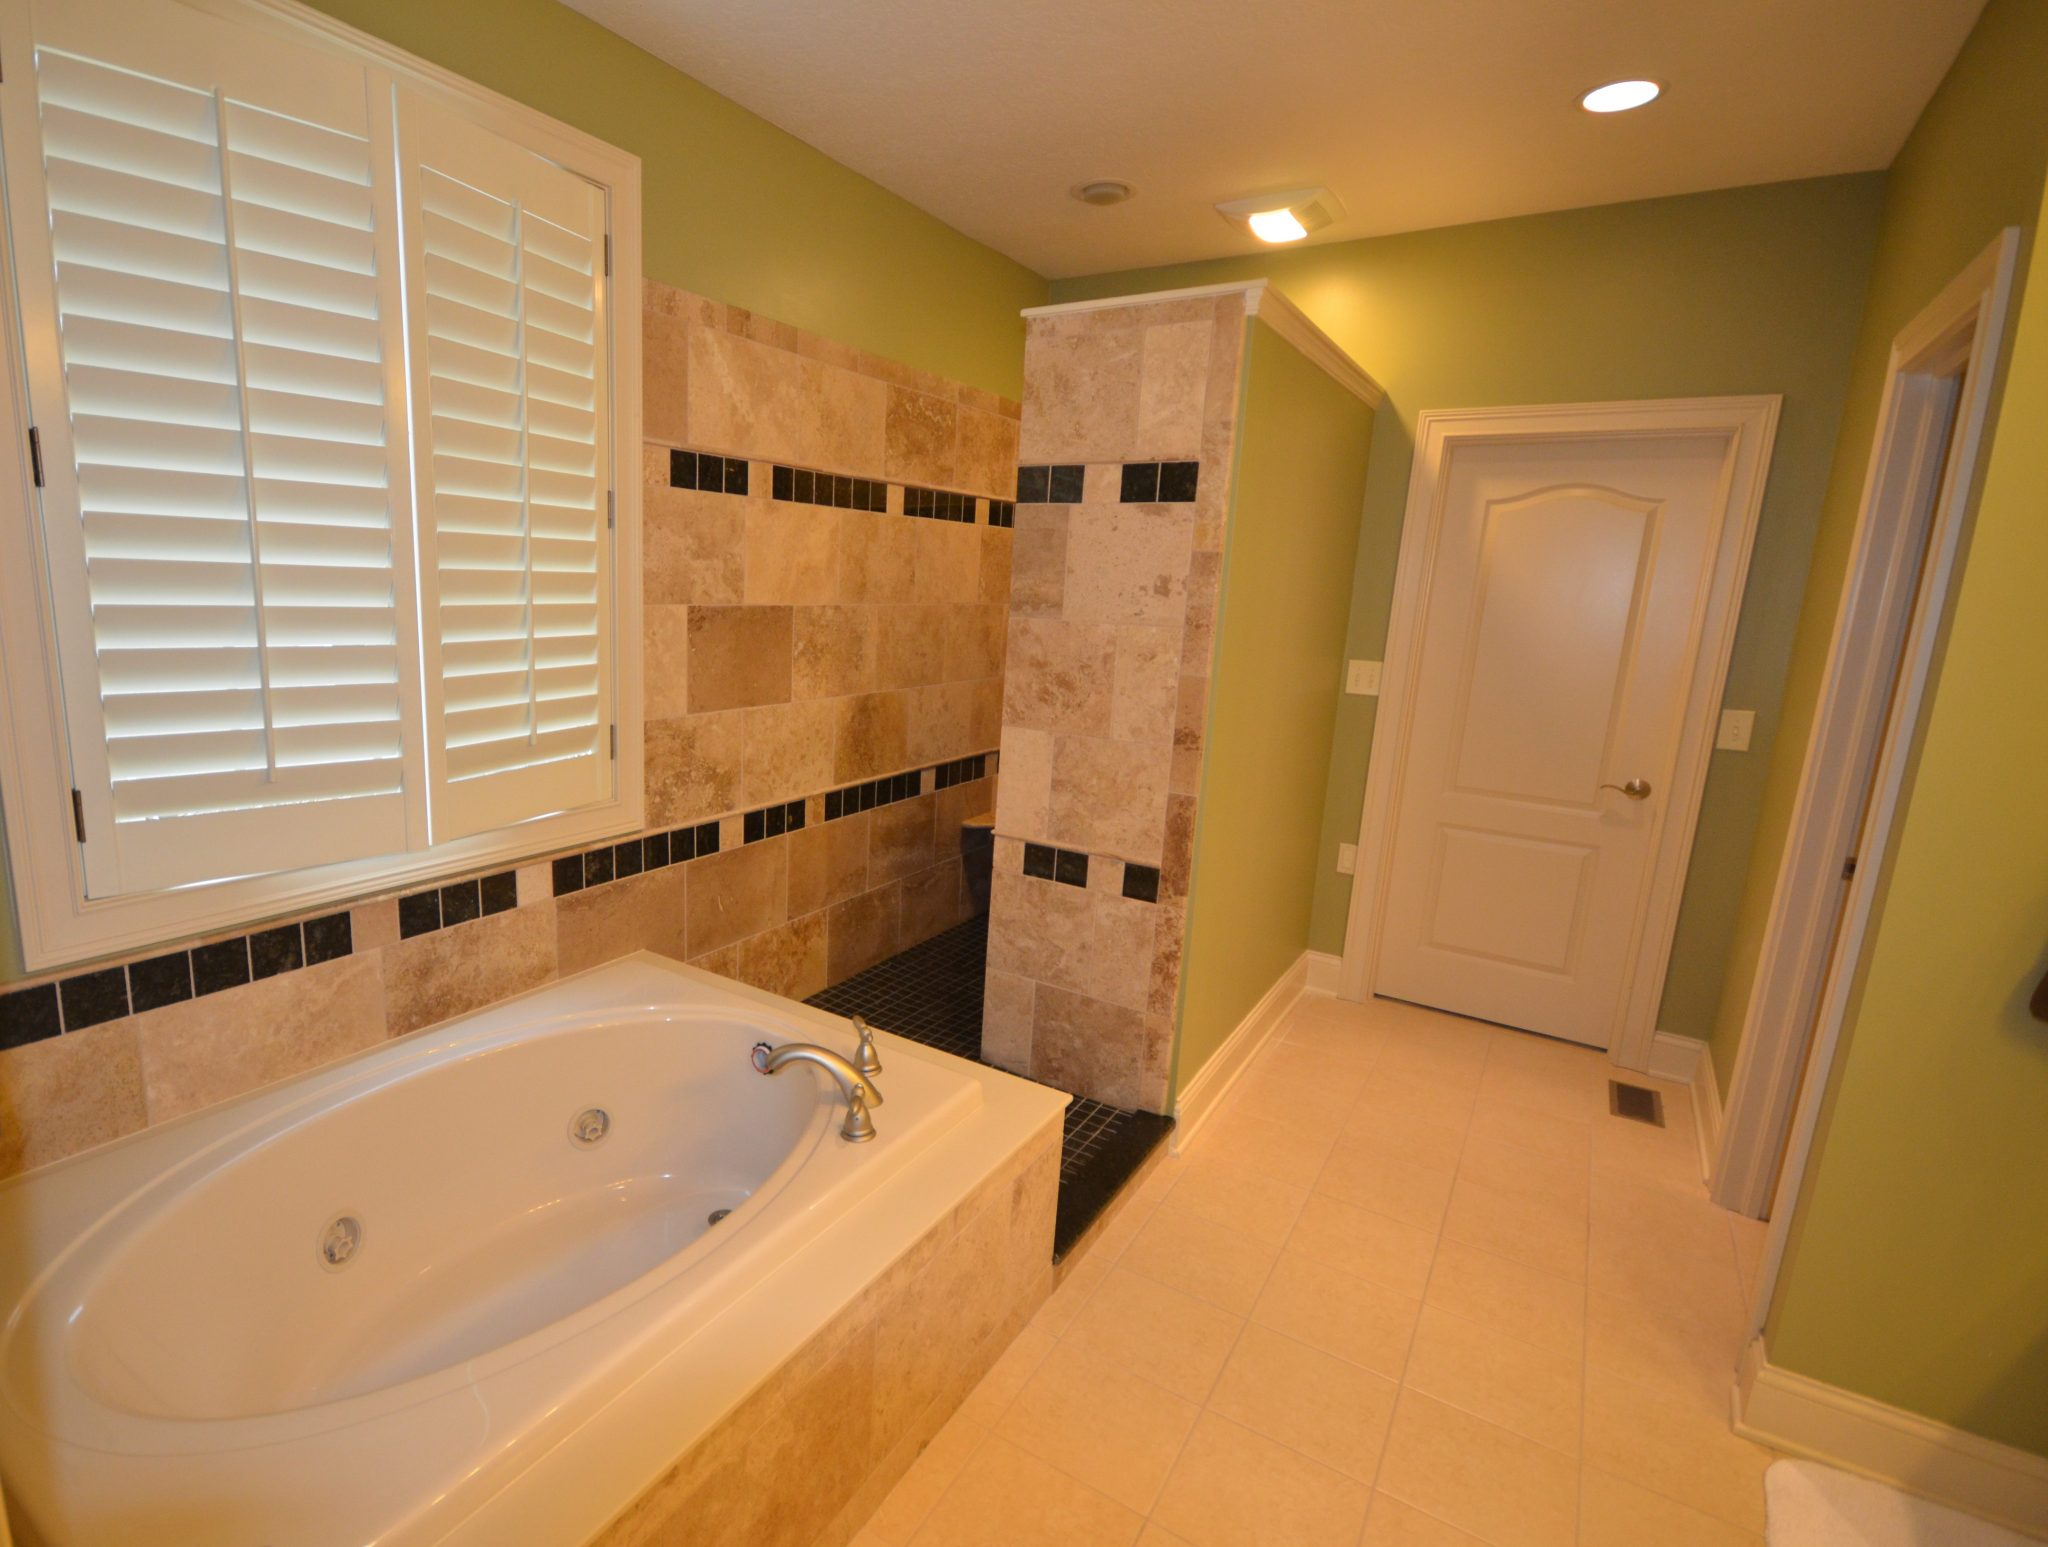 Bathroom Remodeling Pick Acrylic To Do The Trick Luxury Bathroom - Acrylic bathroom remodeling